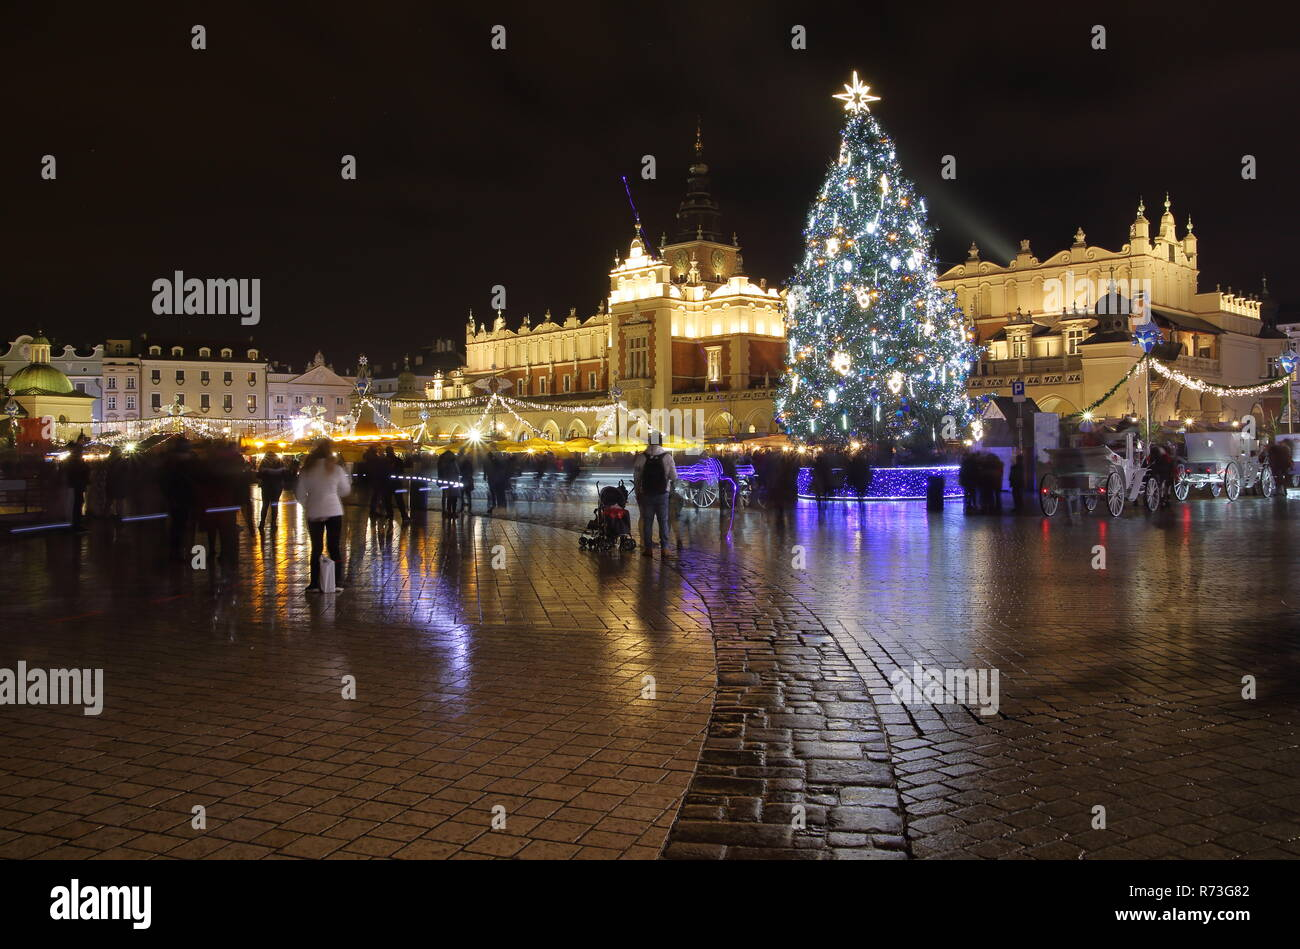 Krakow city scape with big Christmas tree, historical illuminated buildings, at night, beautiful reflections on wet ground, people, long exposure. - Stock Image